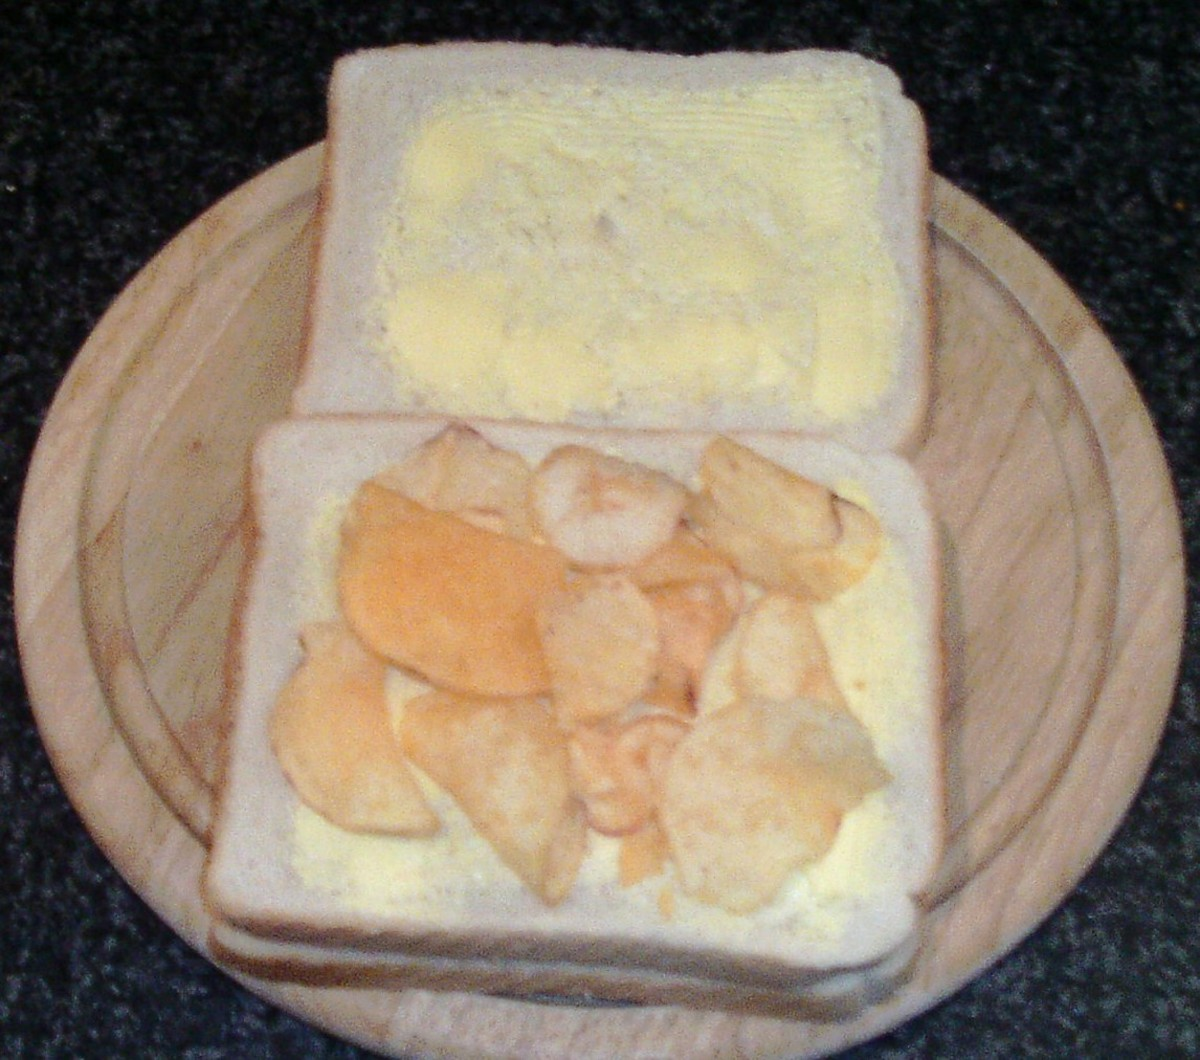 Cheese and onion crisps top second slice of bread